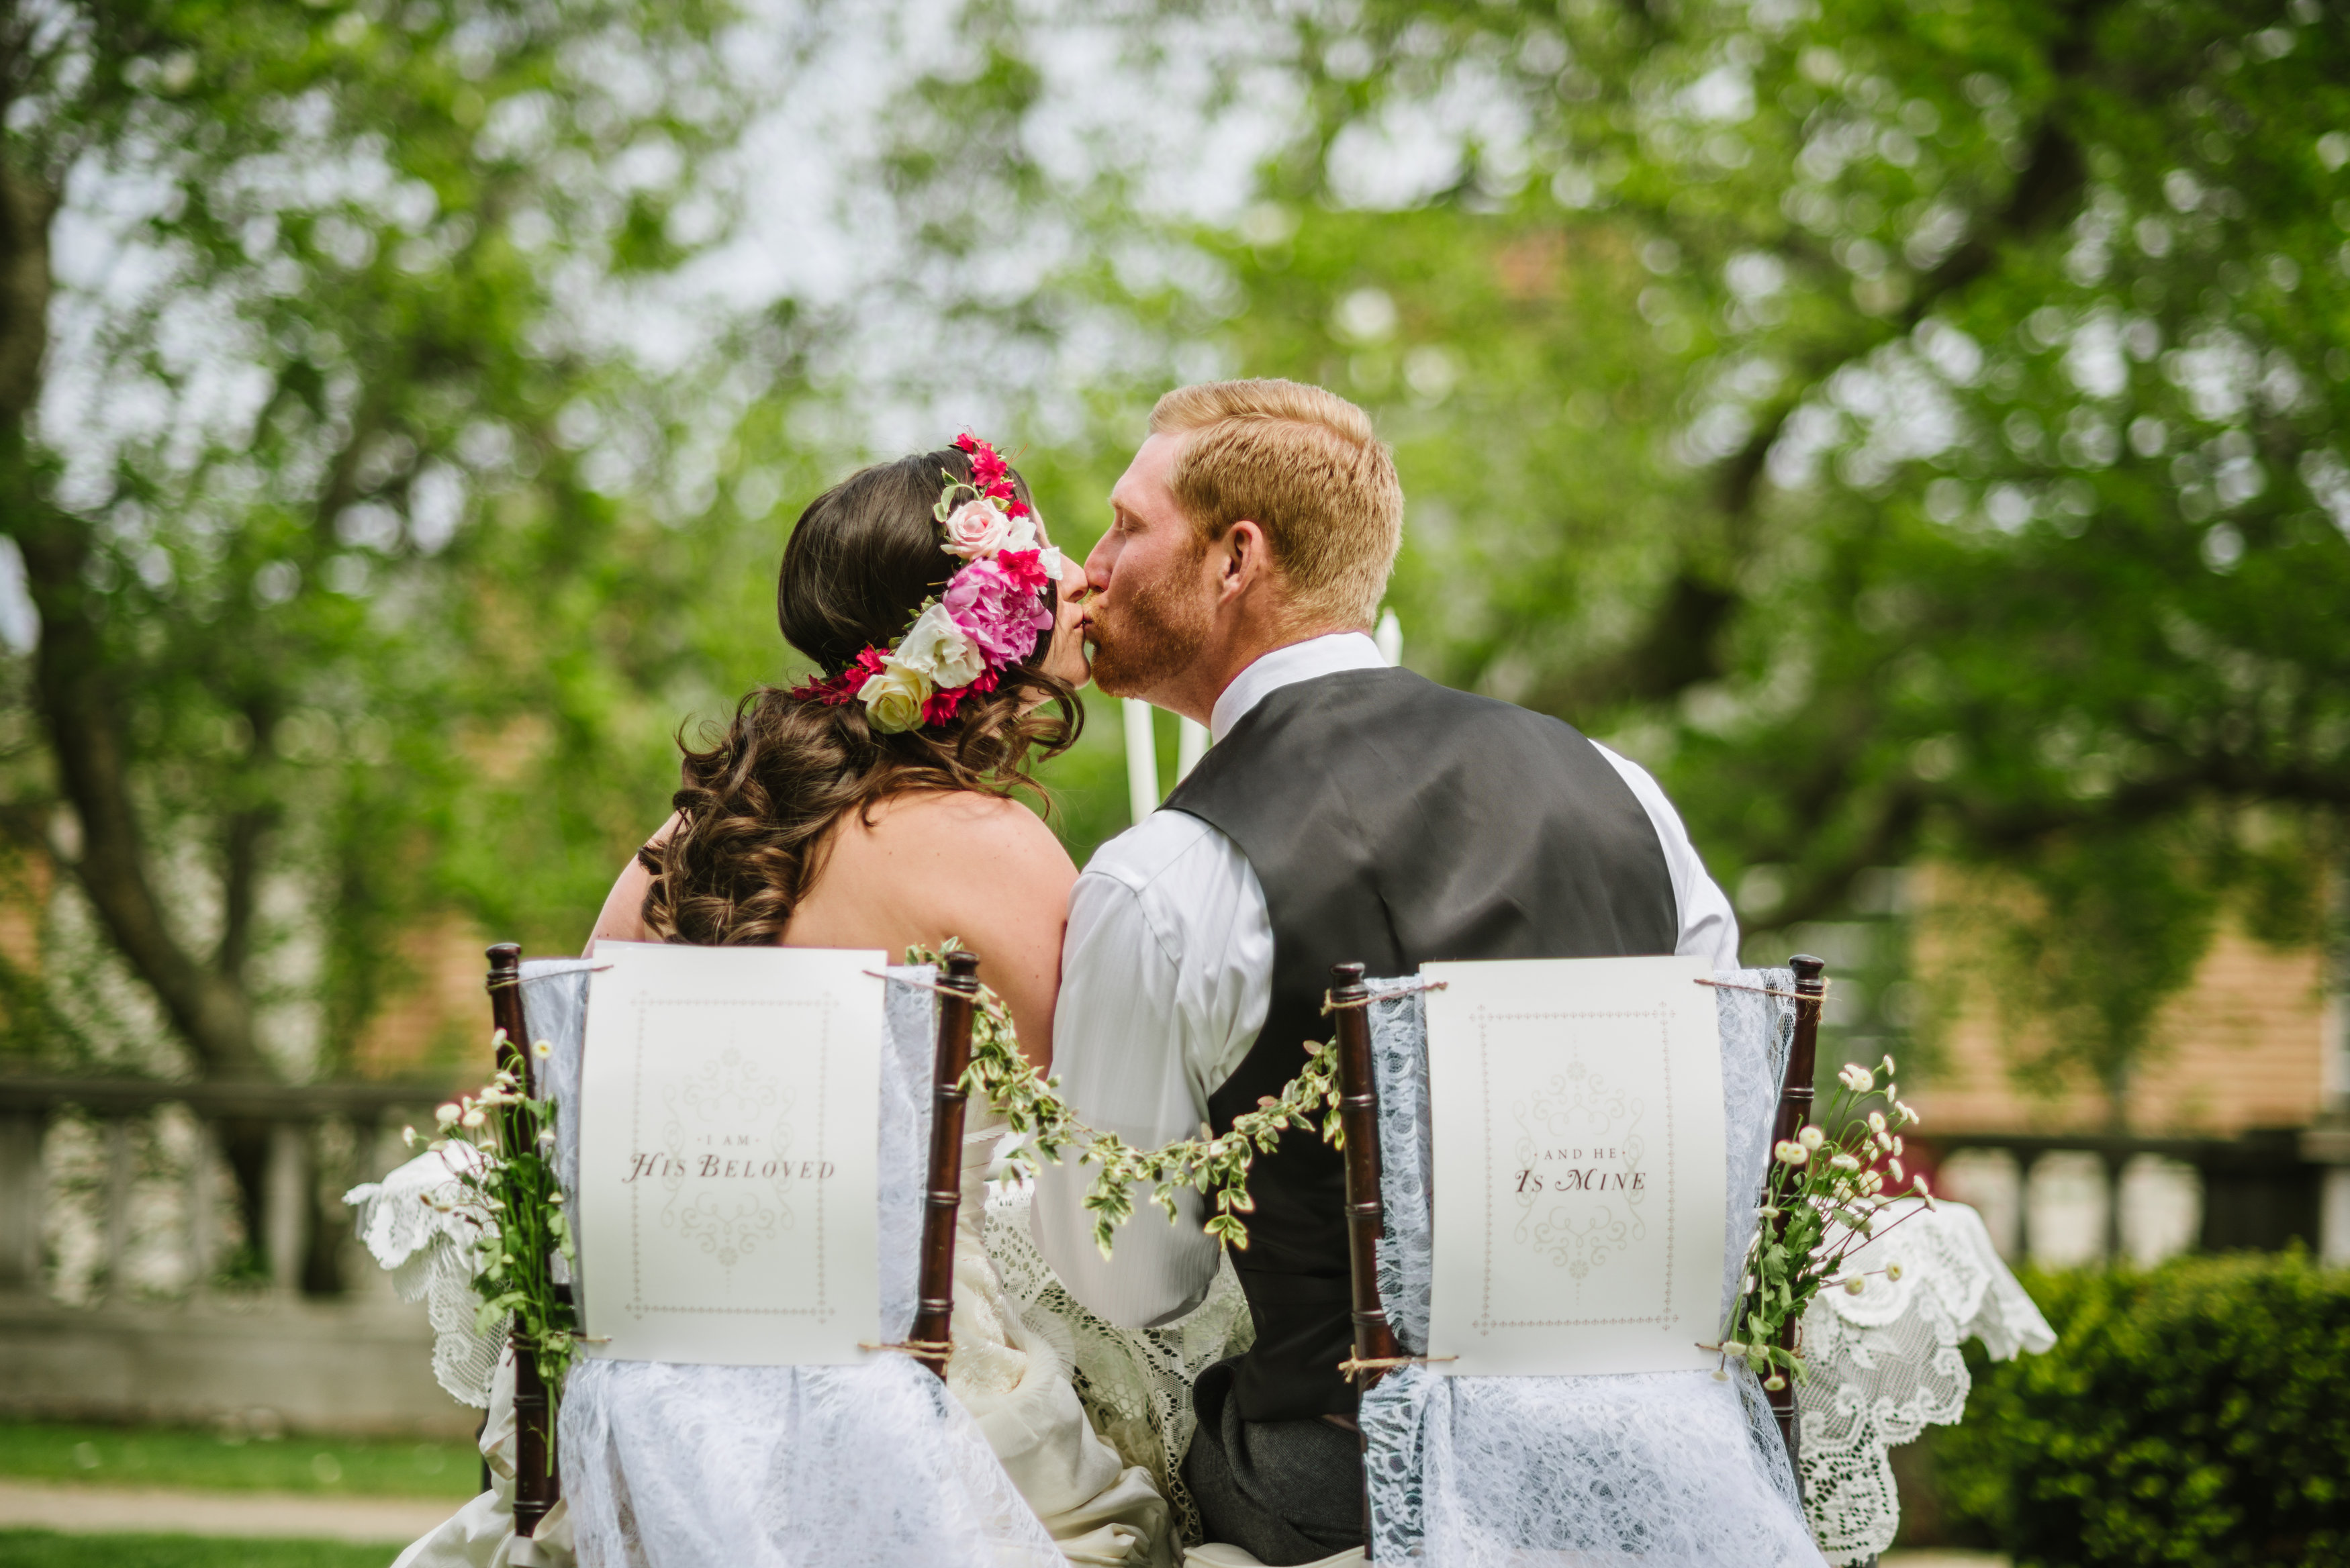 View More: http://kerrilynne.pass.us/downton-styled-shoot